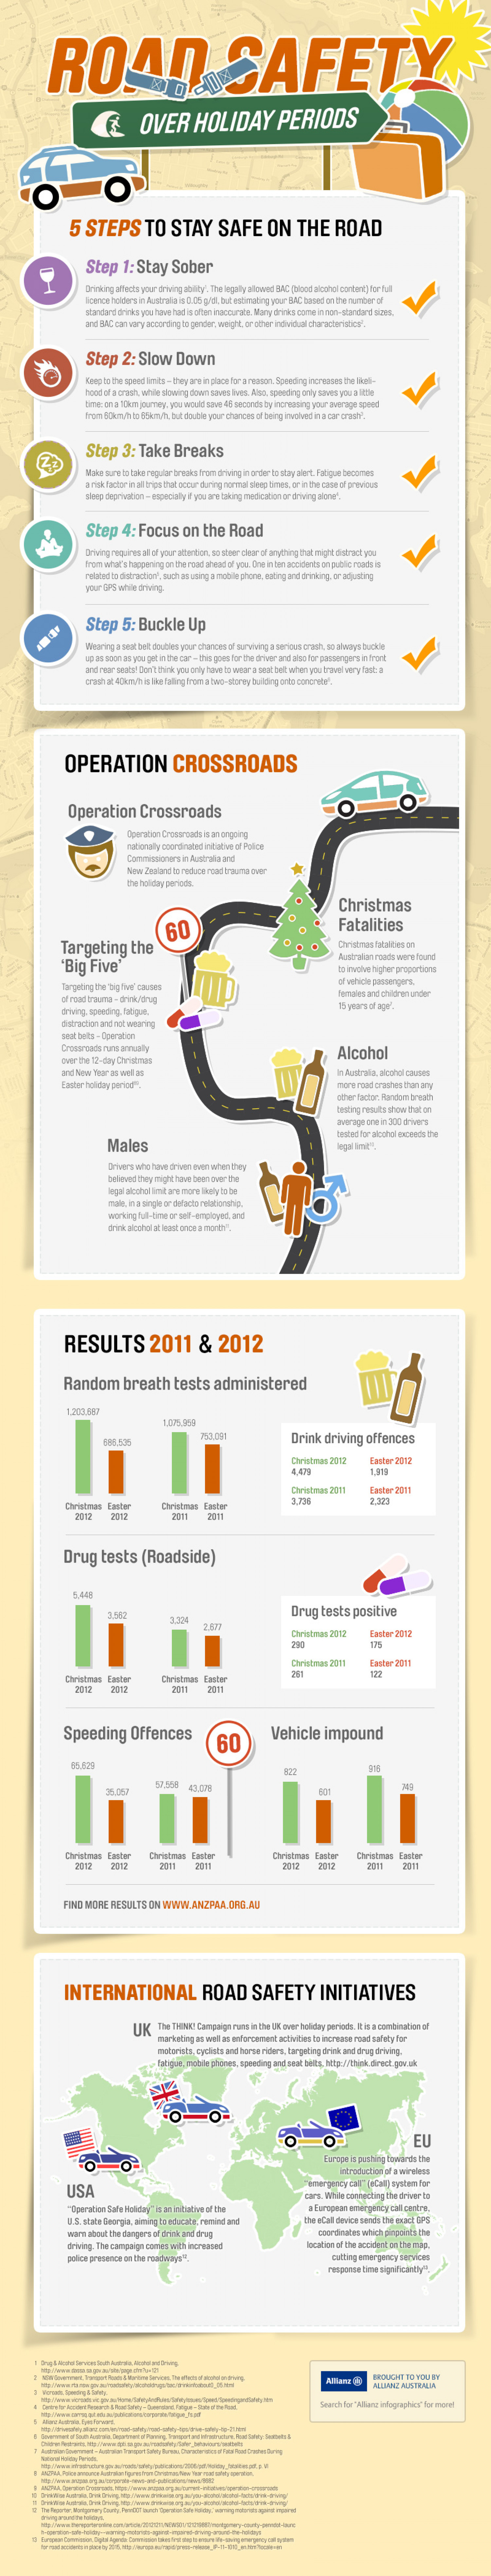 Road safety over holiday periods Infographic